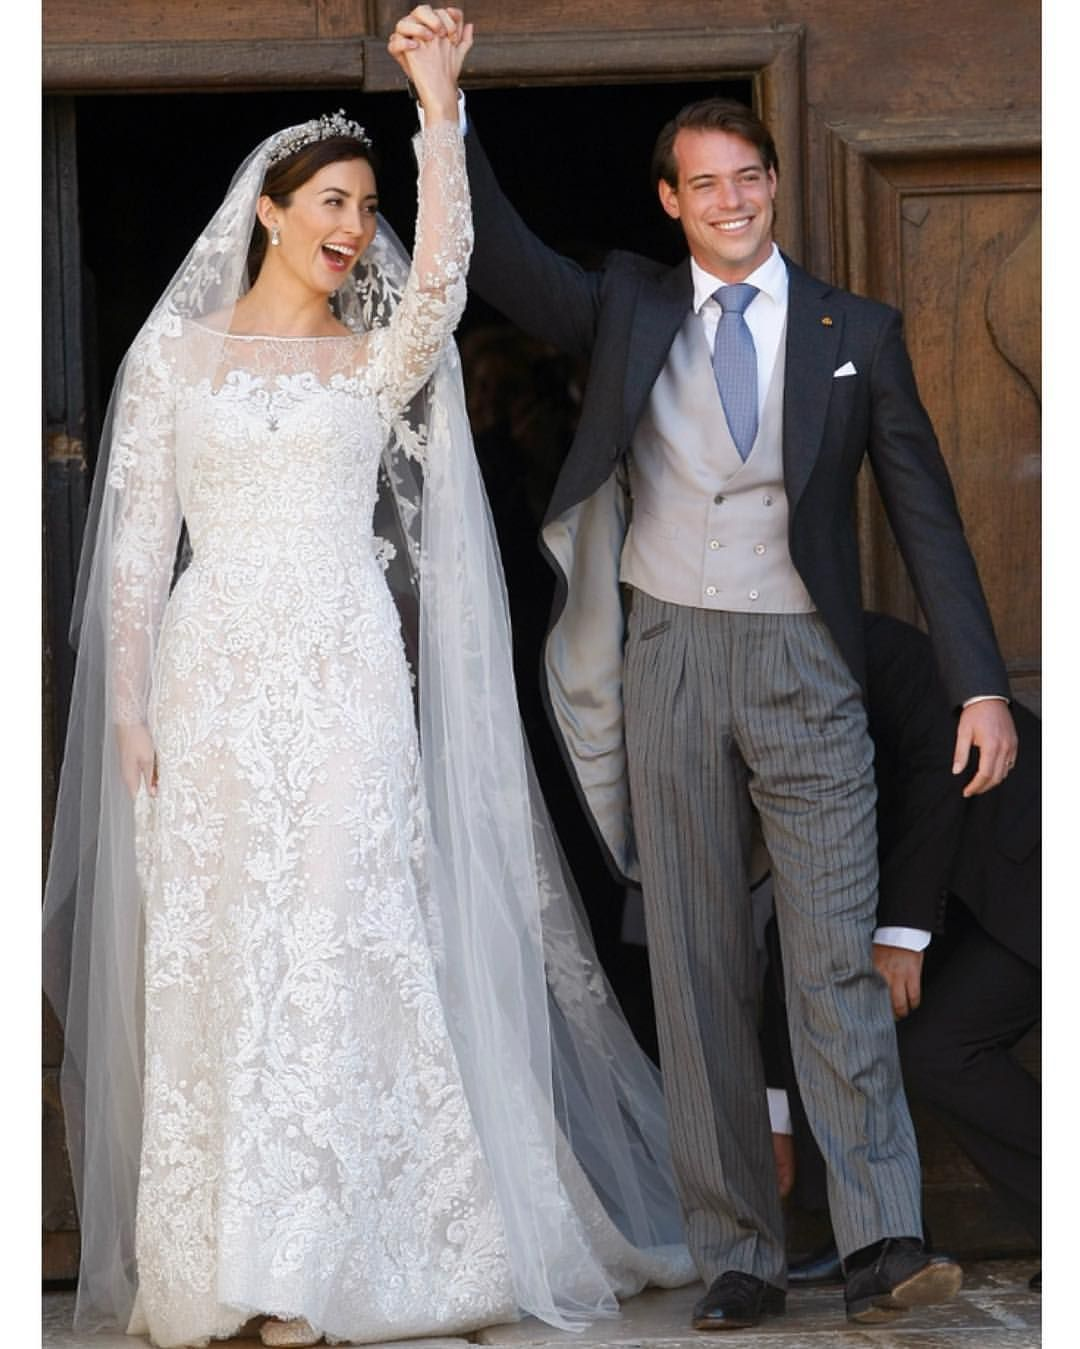 Onthisday 21st September 2013 Prince Felix Of Luxembourg Married Claire Lademacher In The Ba Royal Wedding Dress Gorgeous Wedding Dress Dream Wedding Dresses [ jpg ]